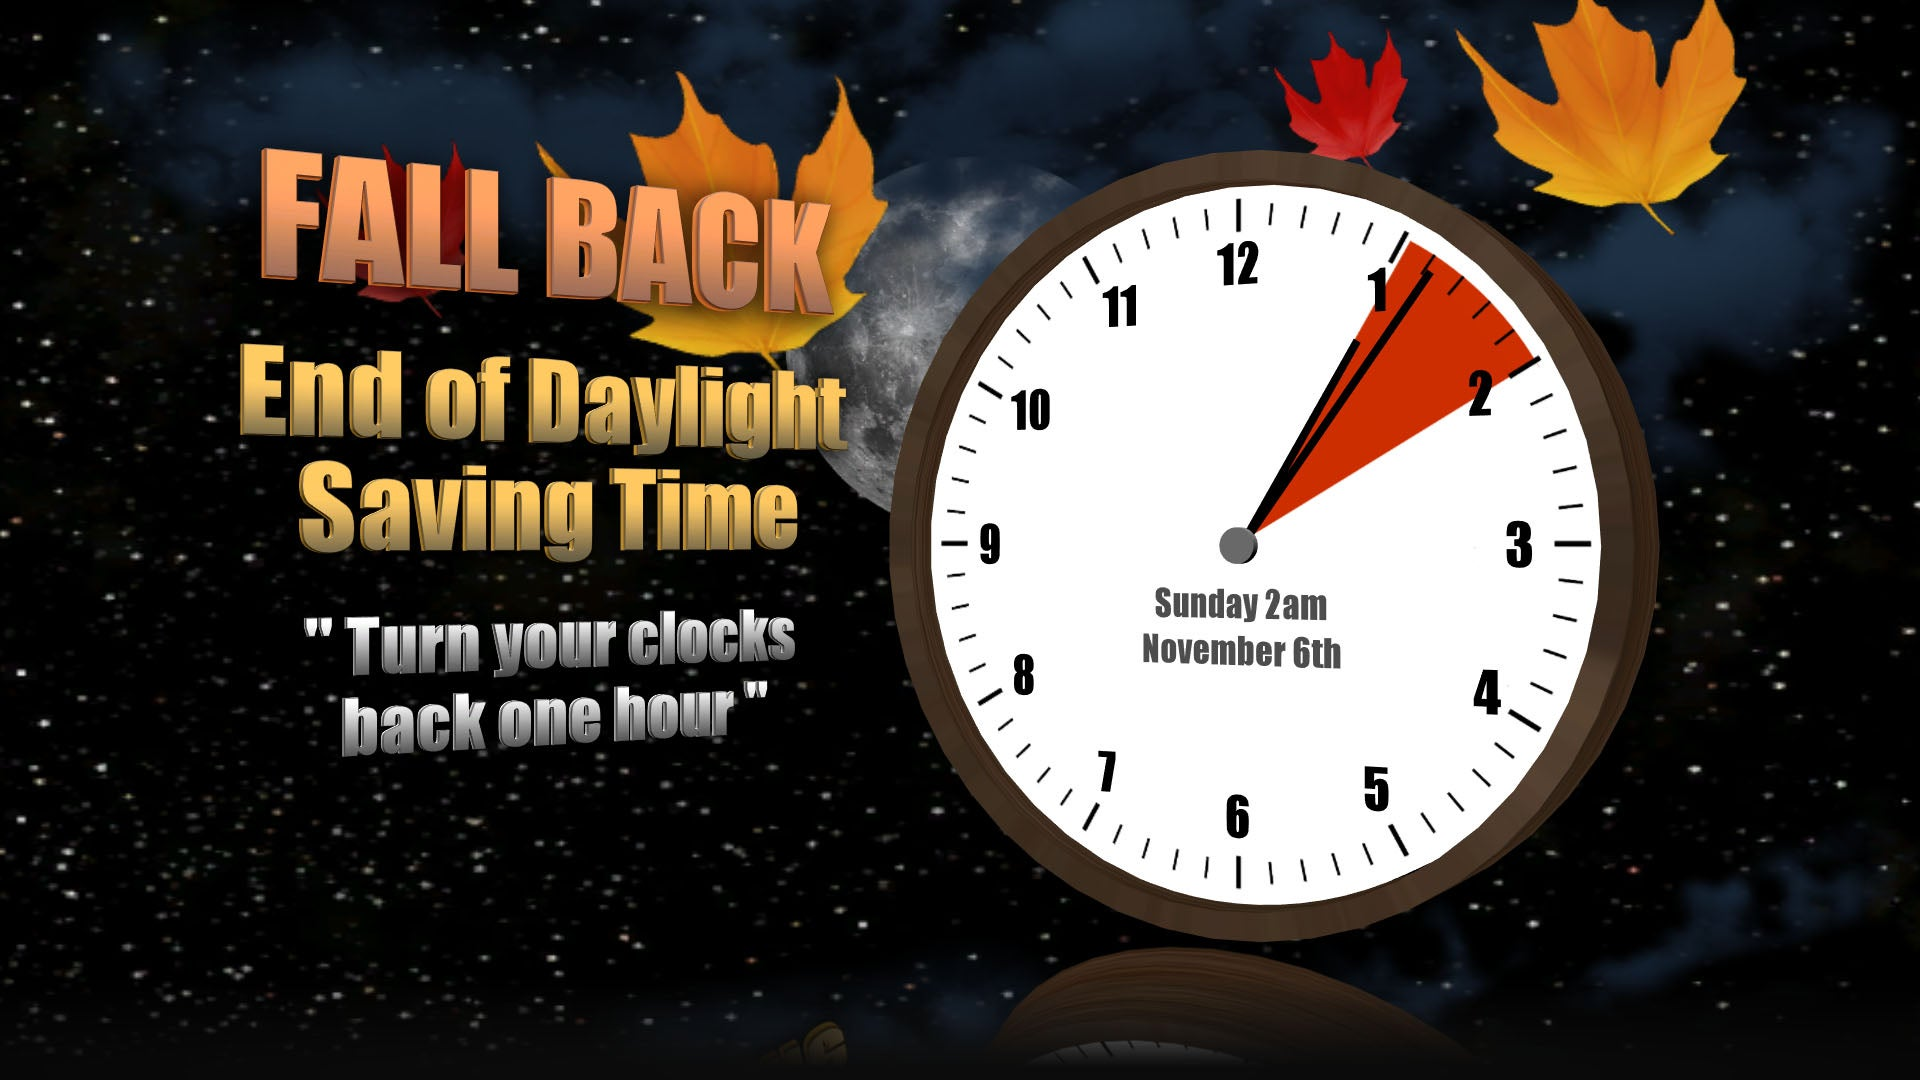 saving time Time during which clocks are set one hour or more ahead of standard time to provide more daylight at the end of the working day during late spring, summer, and early fall first proposed by benjamin franklin, daylight saving time was instituted in various countries during both world wars in the 20th.